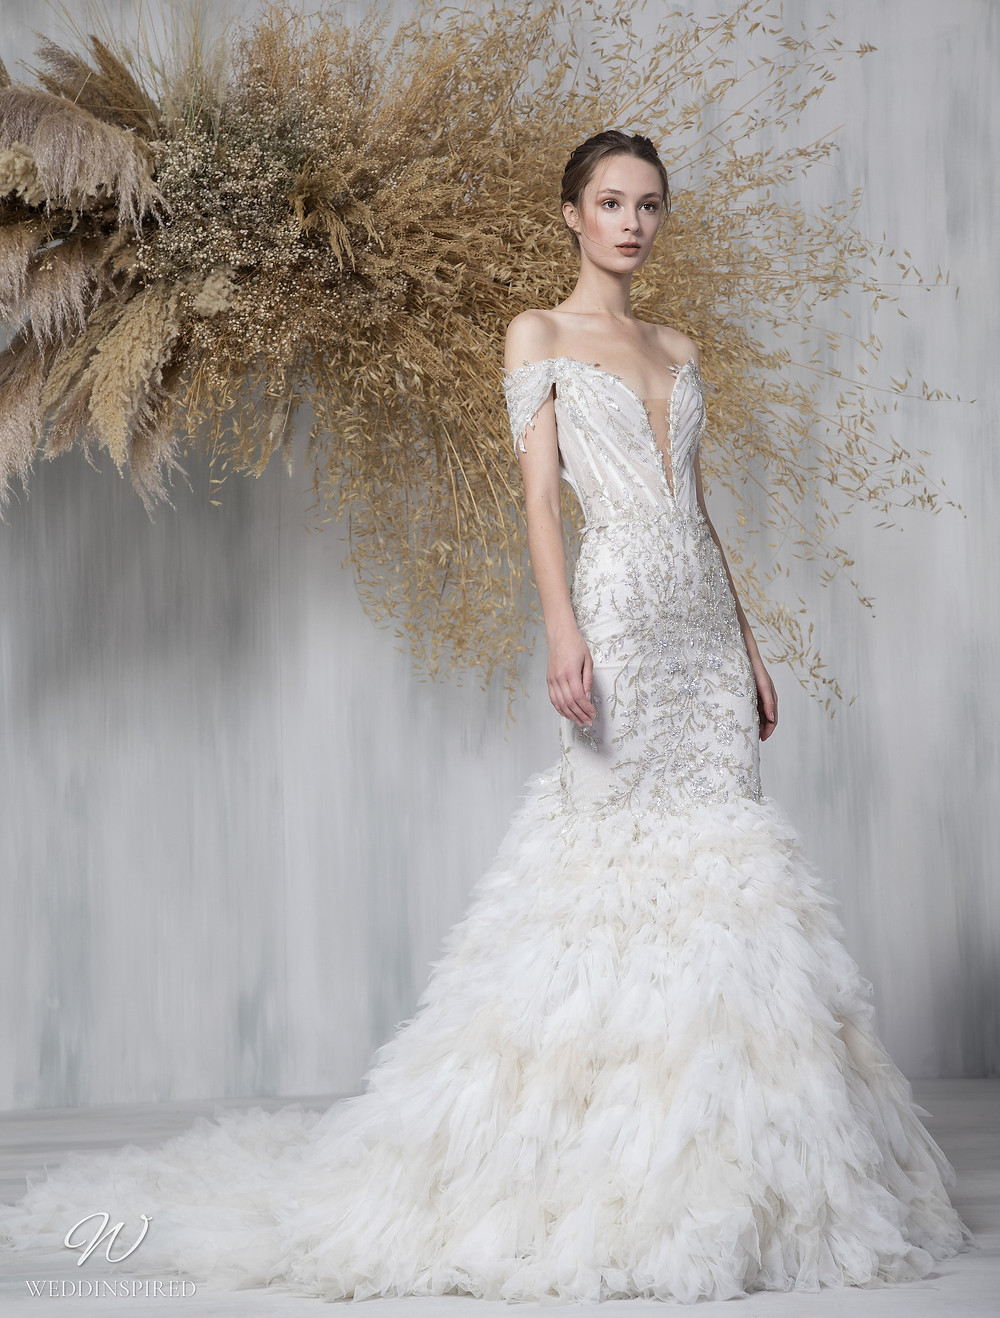 A Tony Ward 2021 off the shoulder mermaid wedding dress with a ruffle skirt and a v neckline